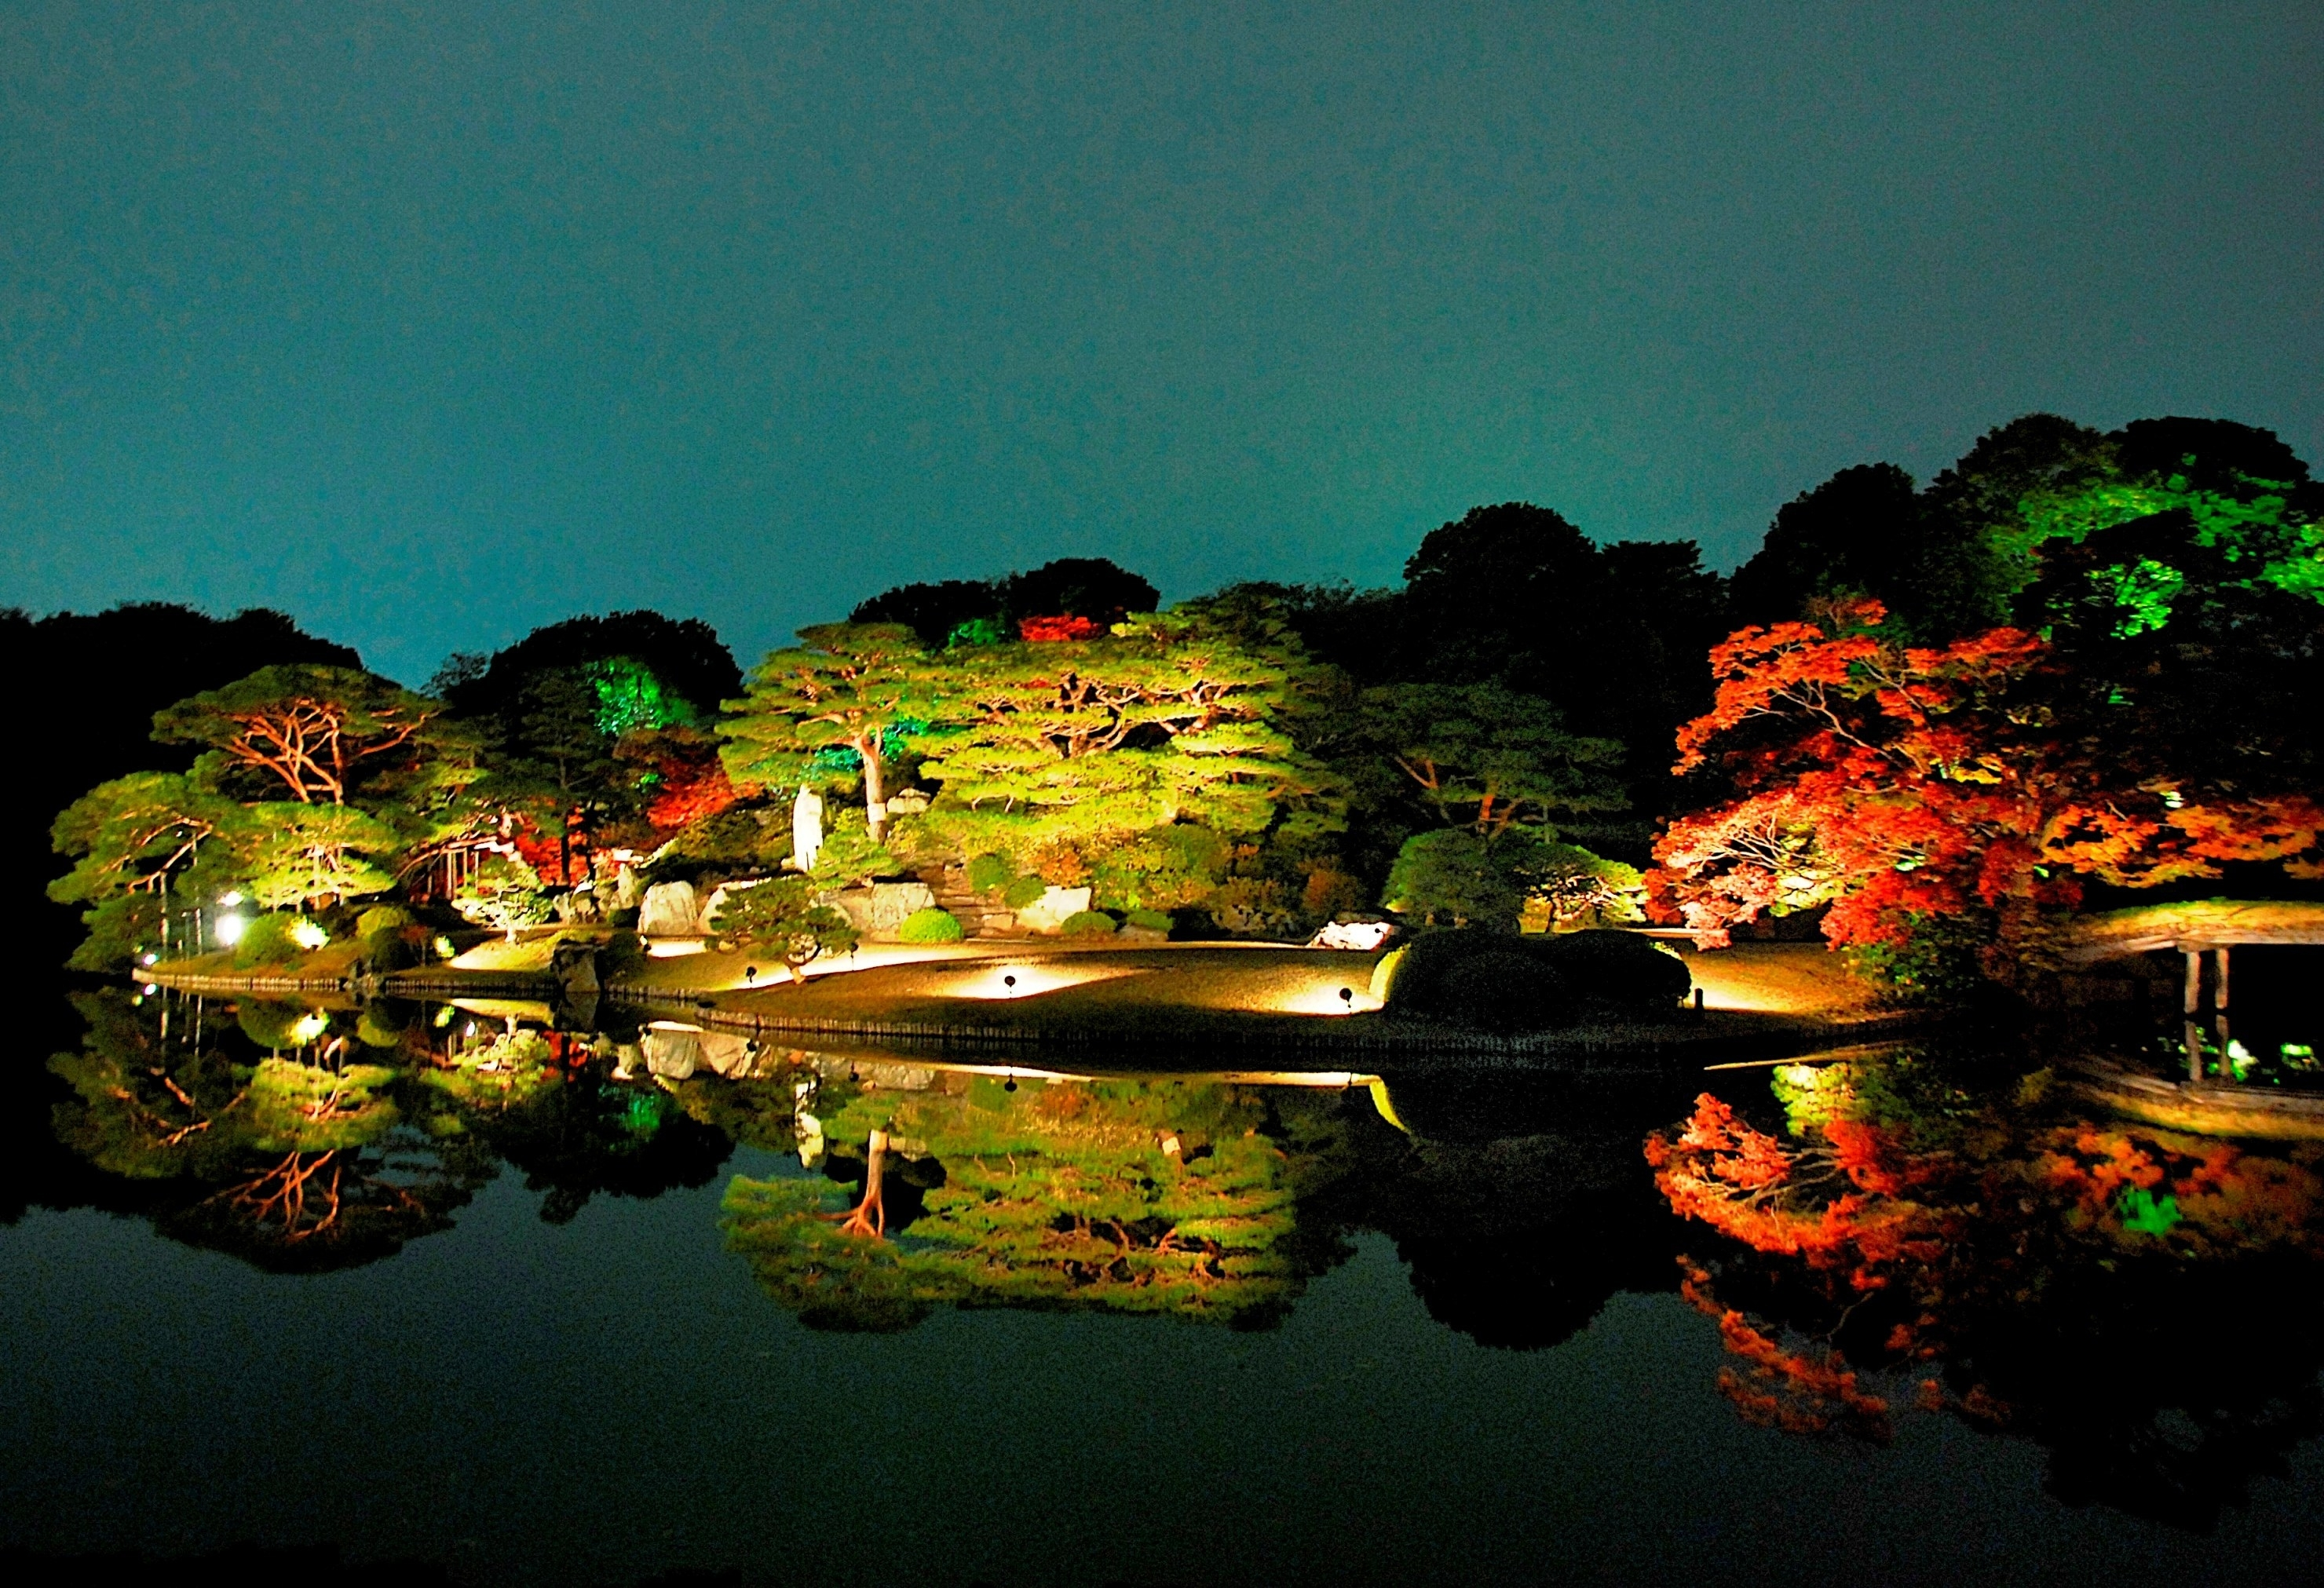 Rikugien Autumn Leaves Lightup | Things To Do In Tokyo within Rikugien Garden Autumn Light Up